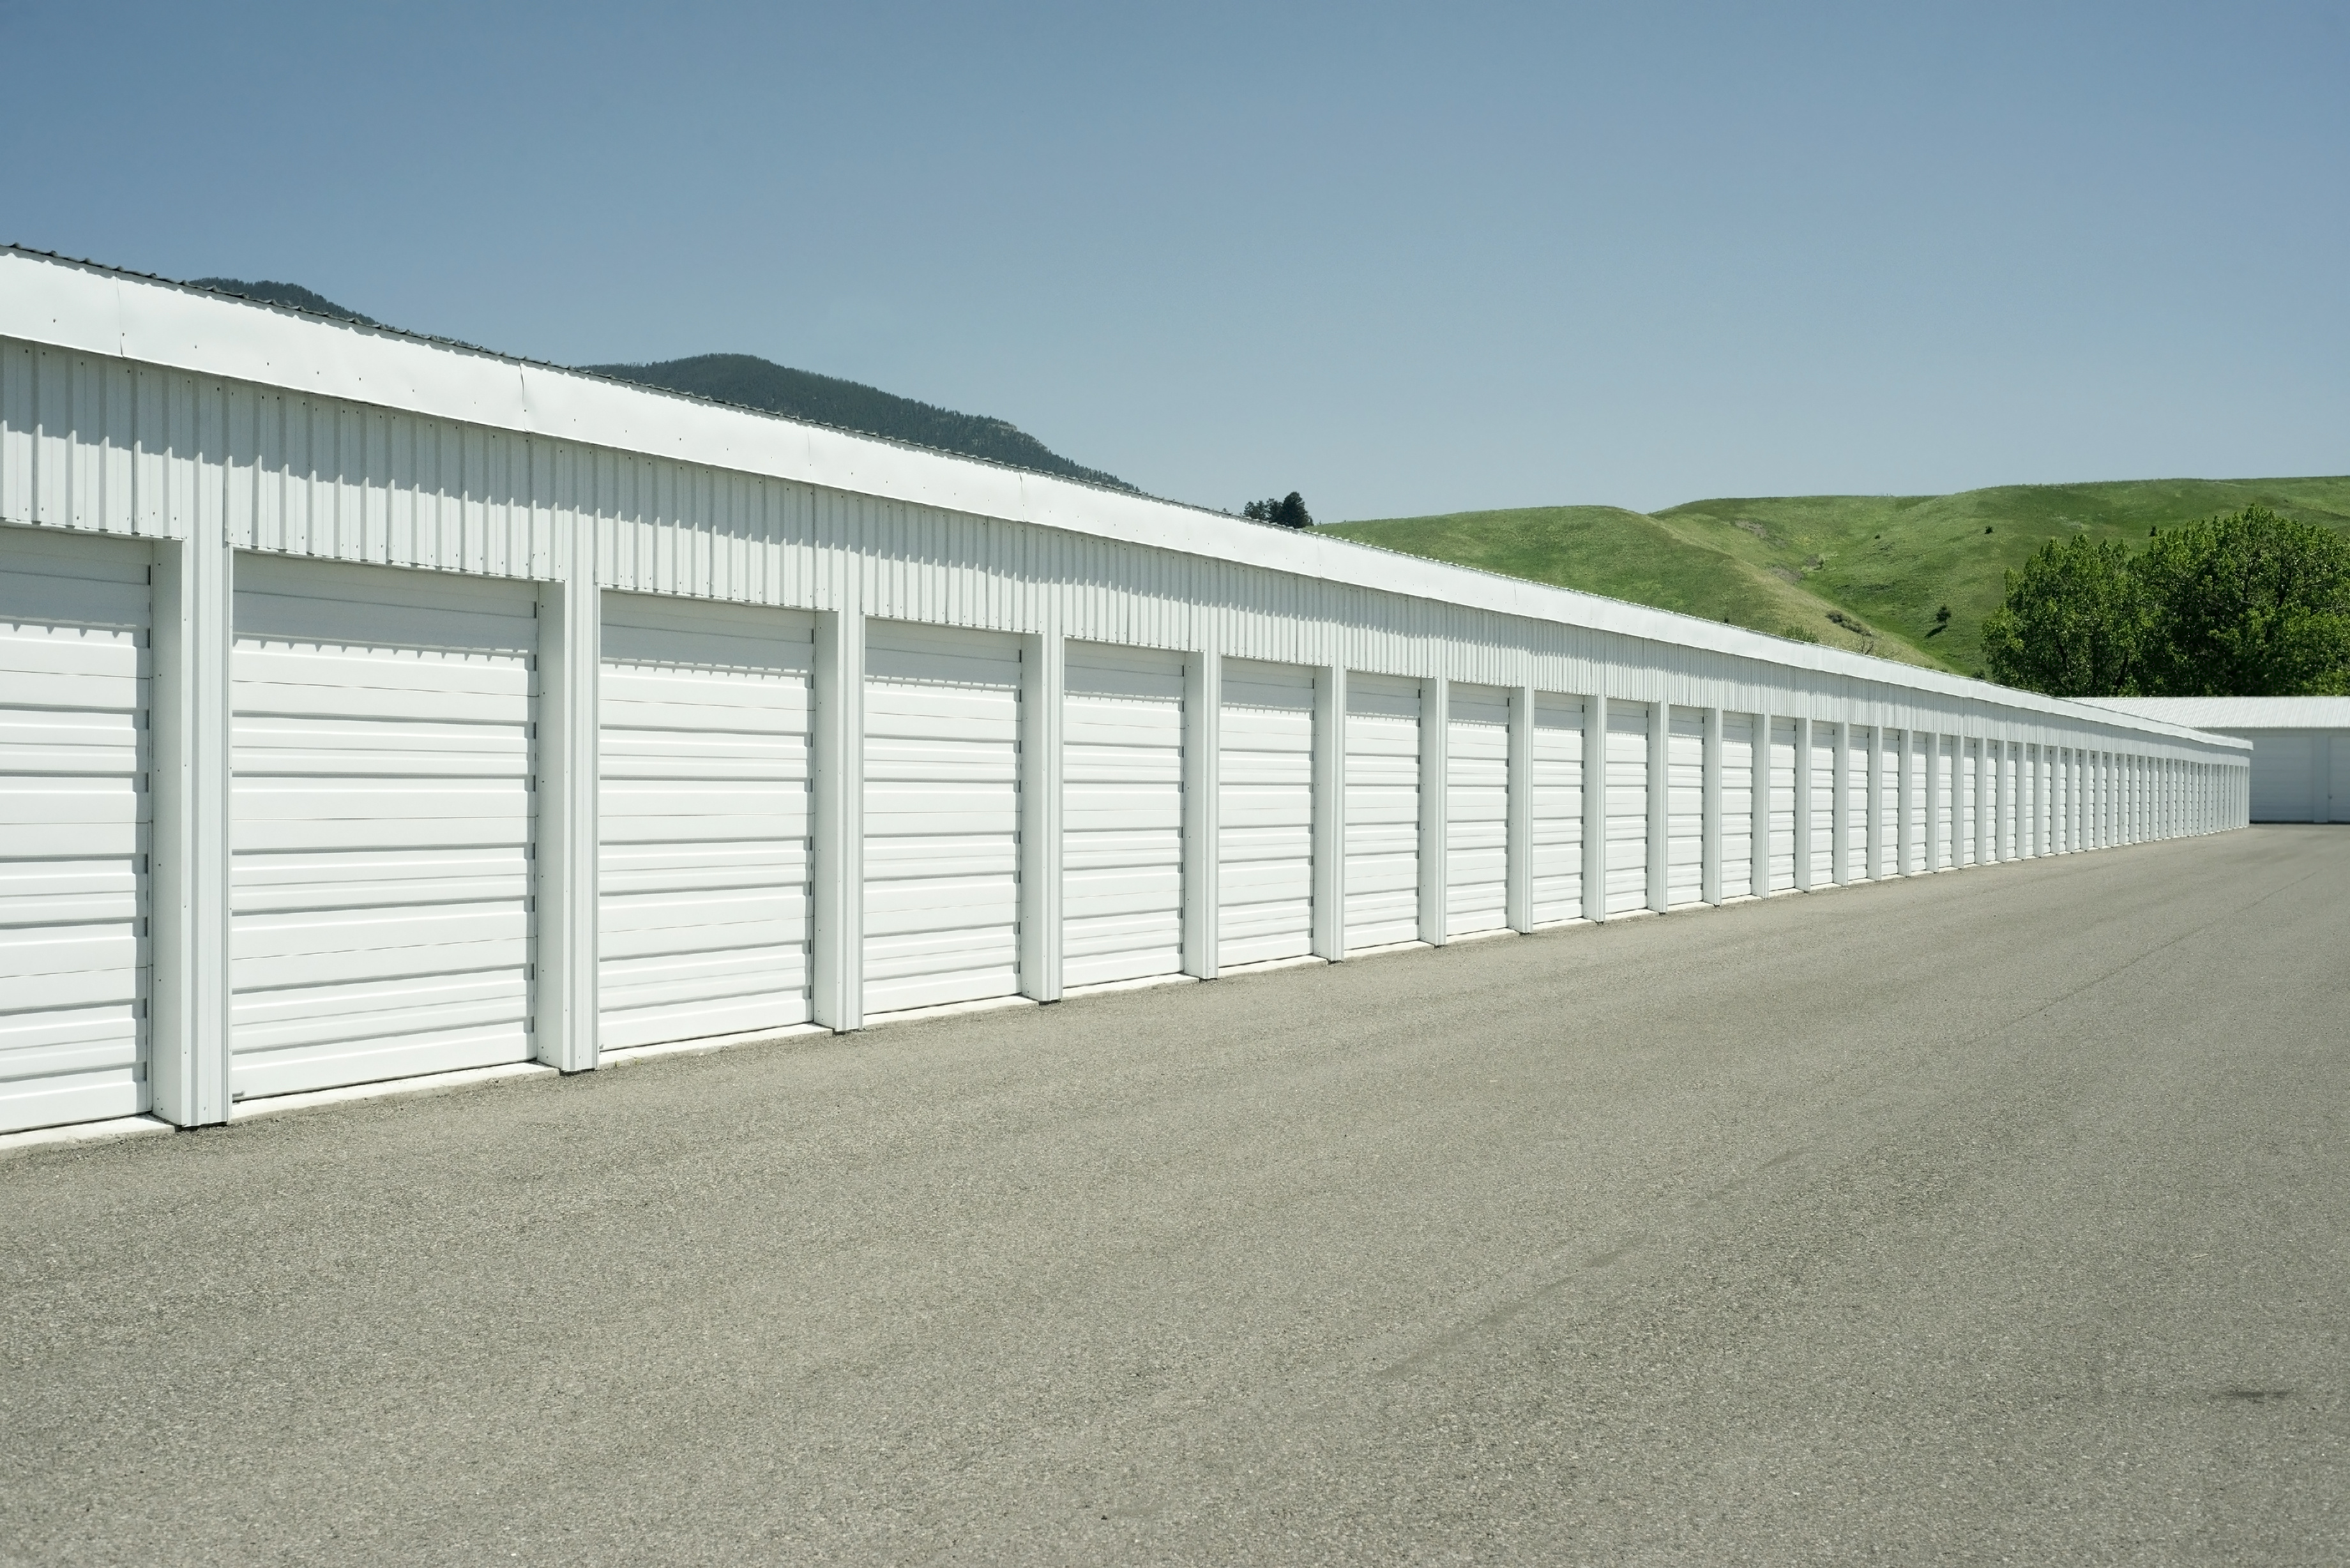 ez storage depot has plenty of storage options for you!